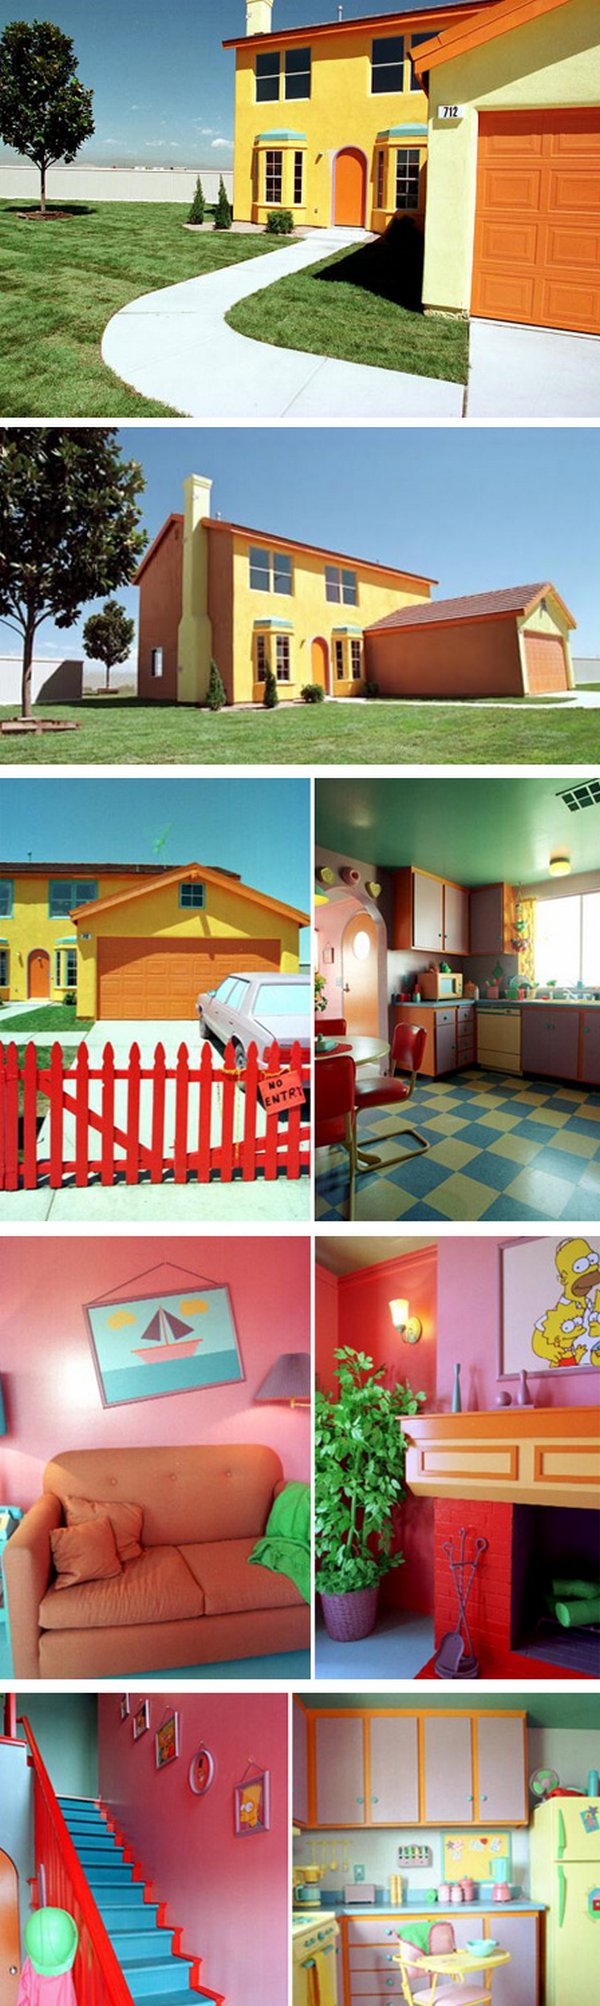 real house inspired by cartoons 03 10 Amazing Houses Inspired By Favorite Cartoons